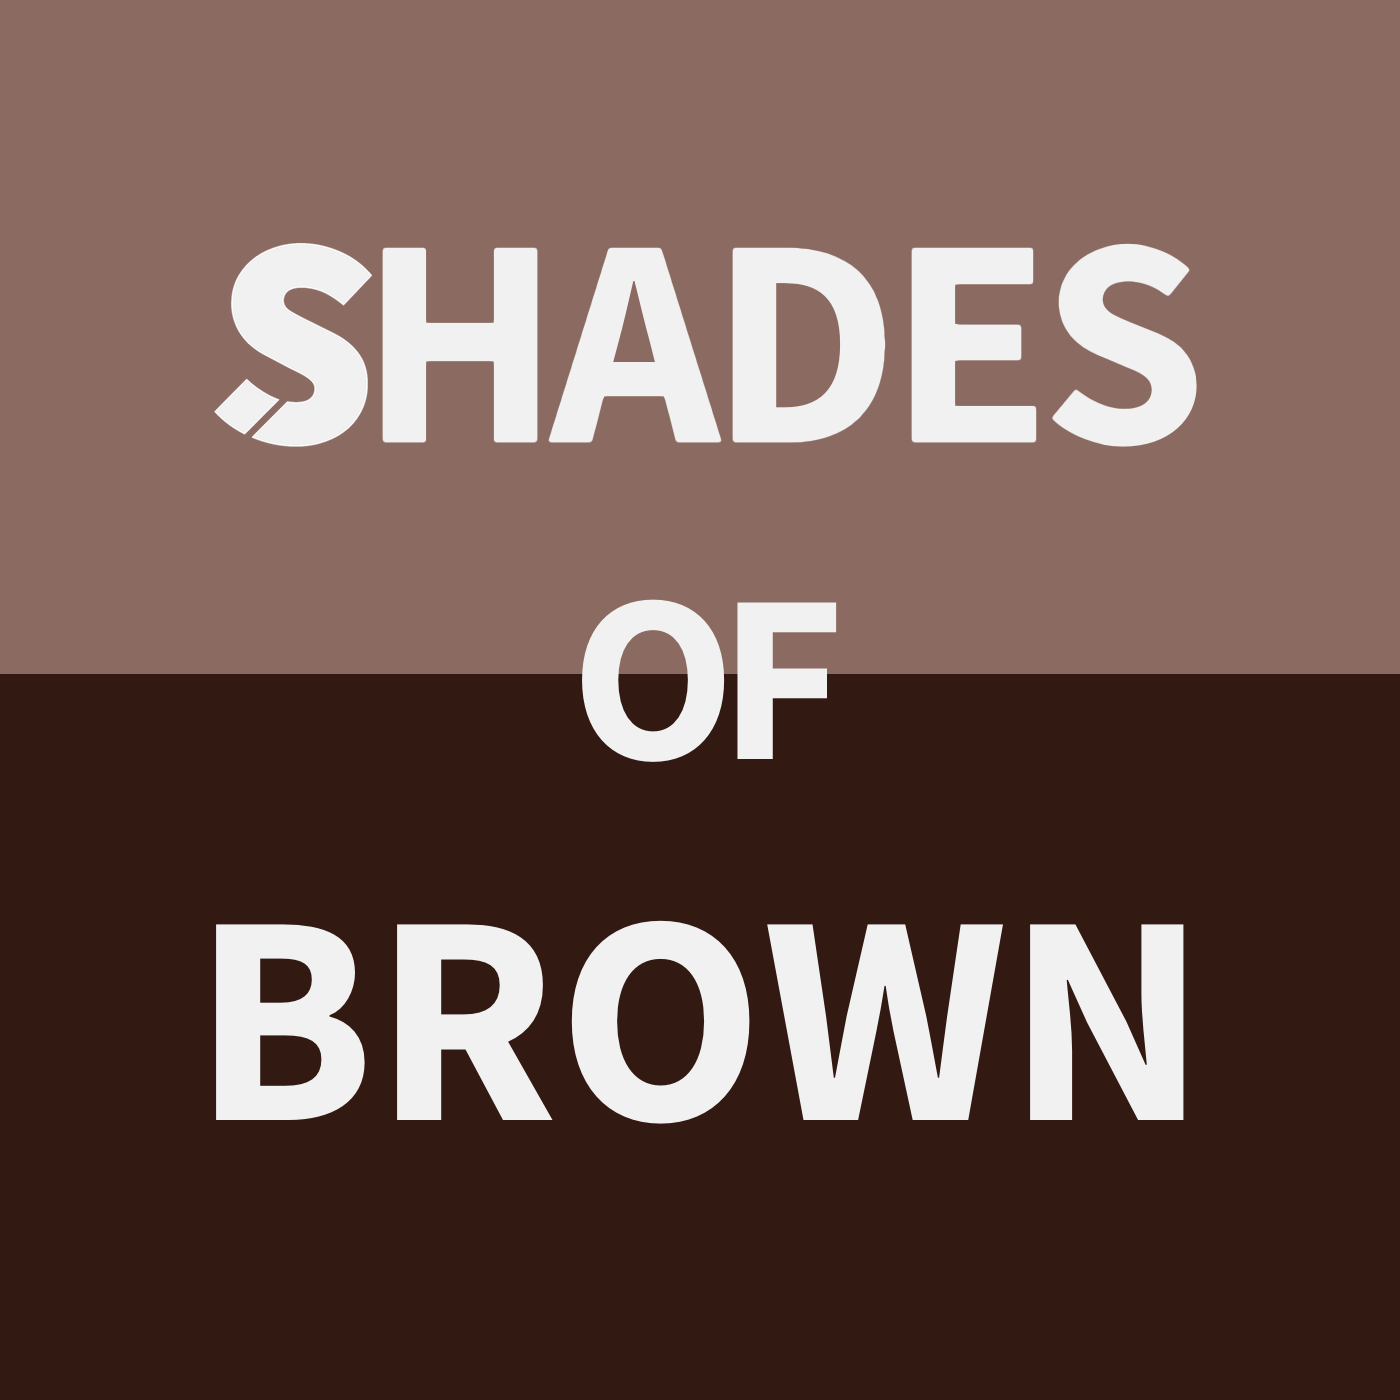 Shades Of Brown